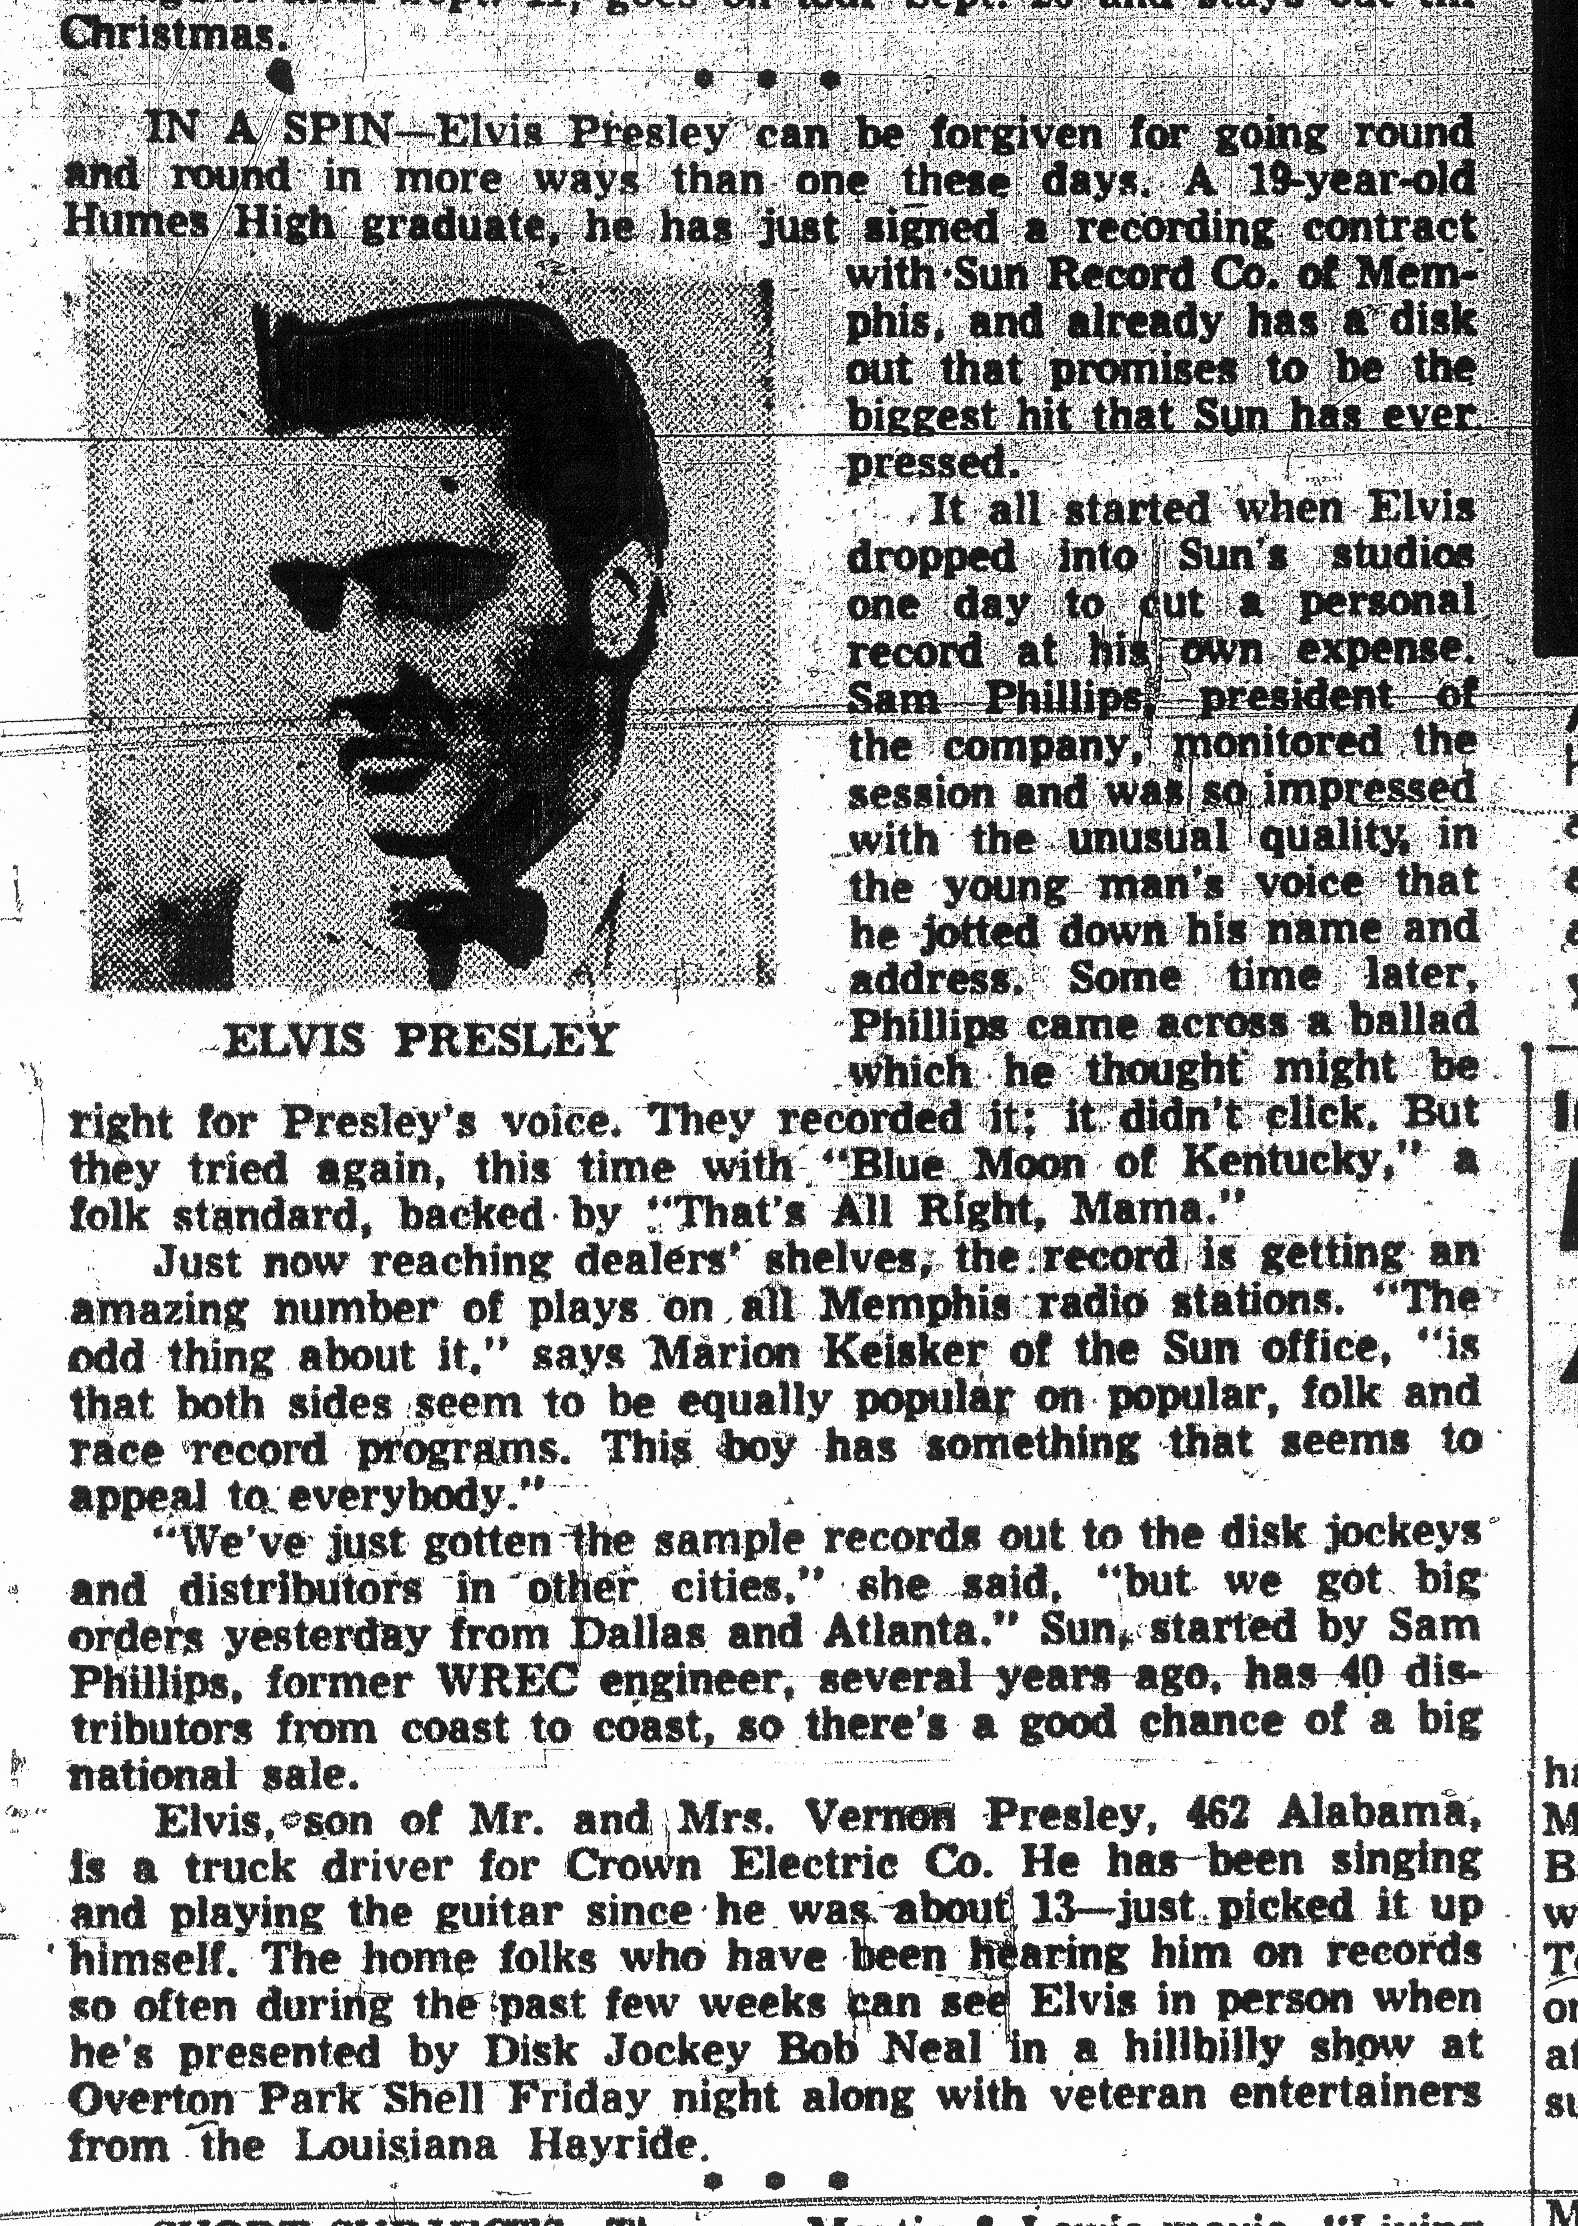 Elvis First Newspaper Article